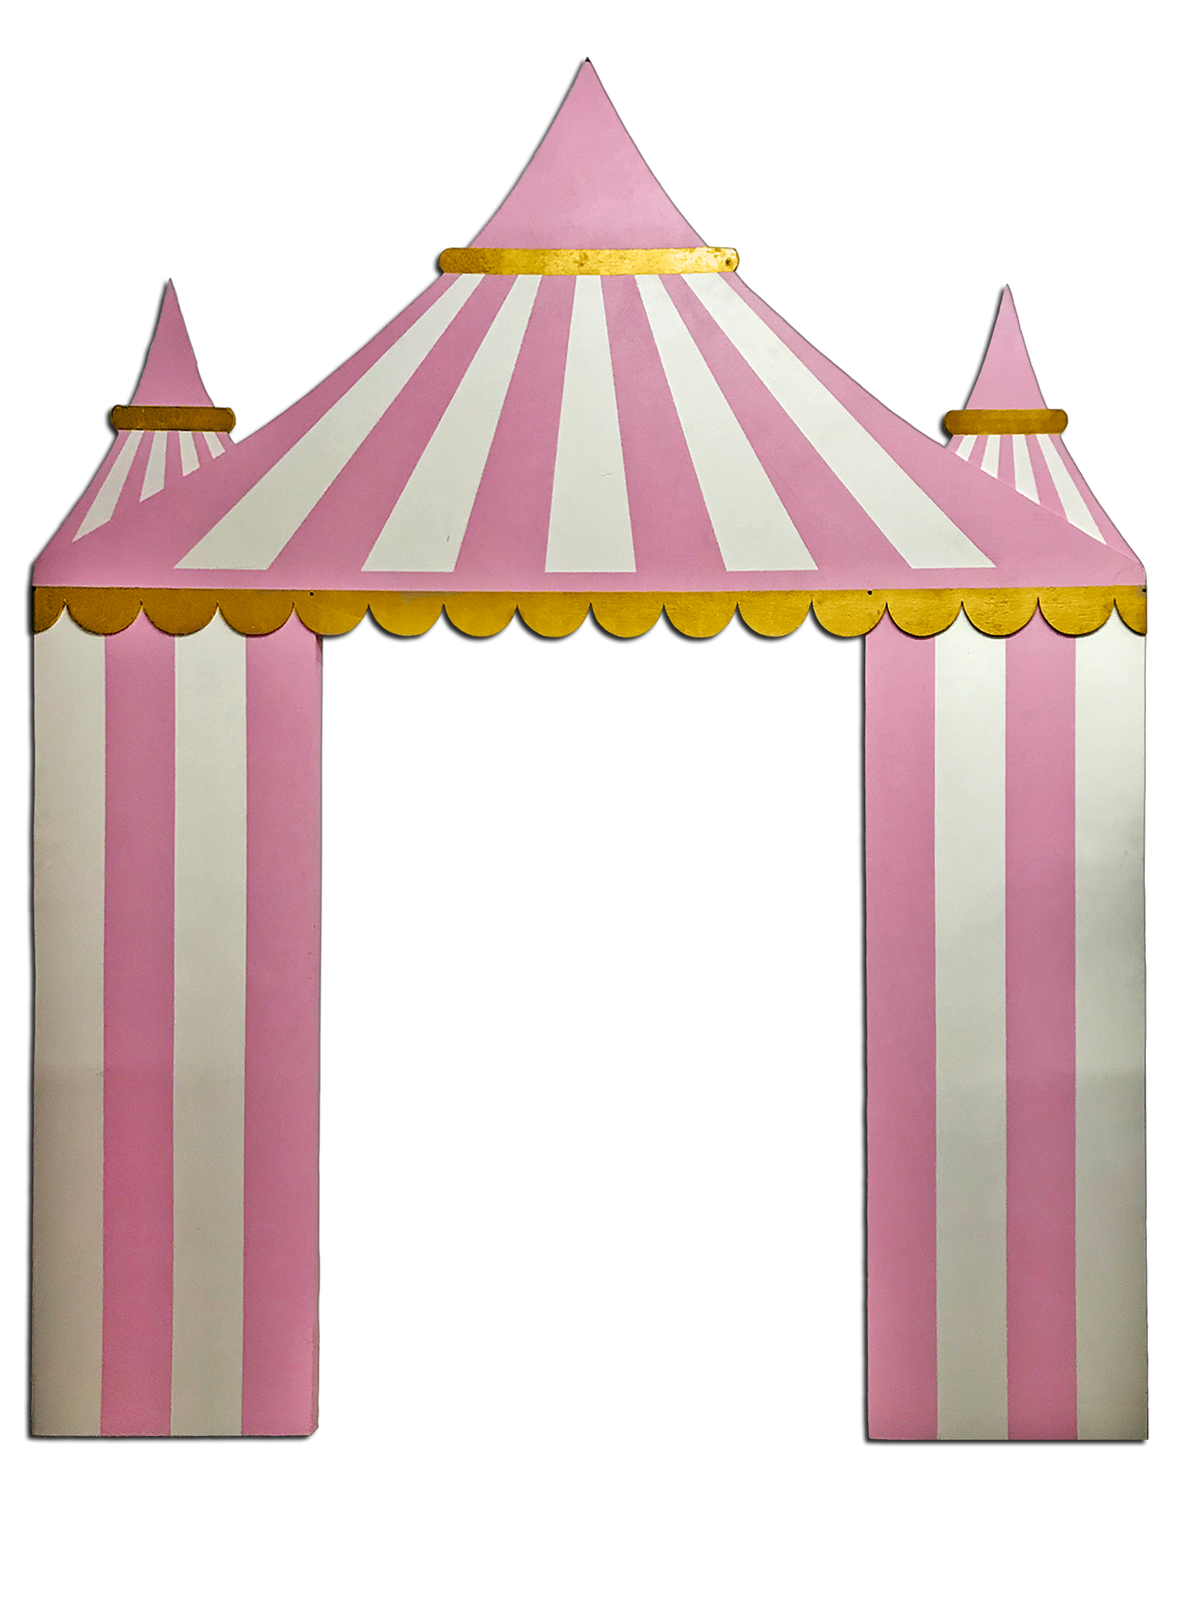 Pink Circus / Carnival Tent Backdrop